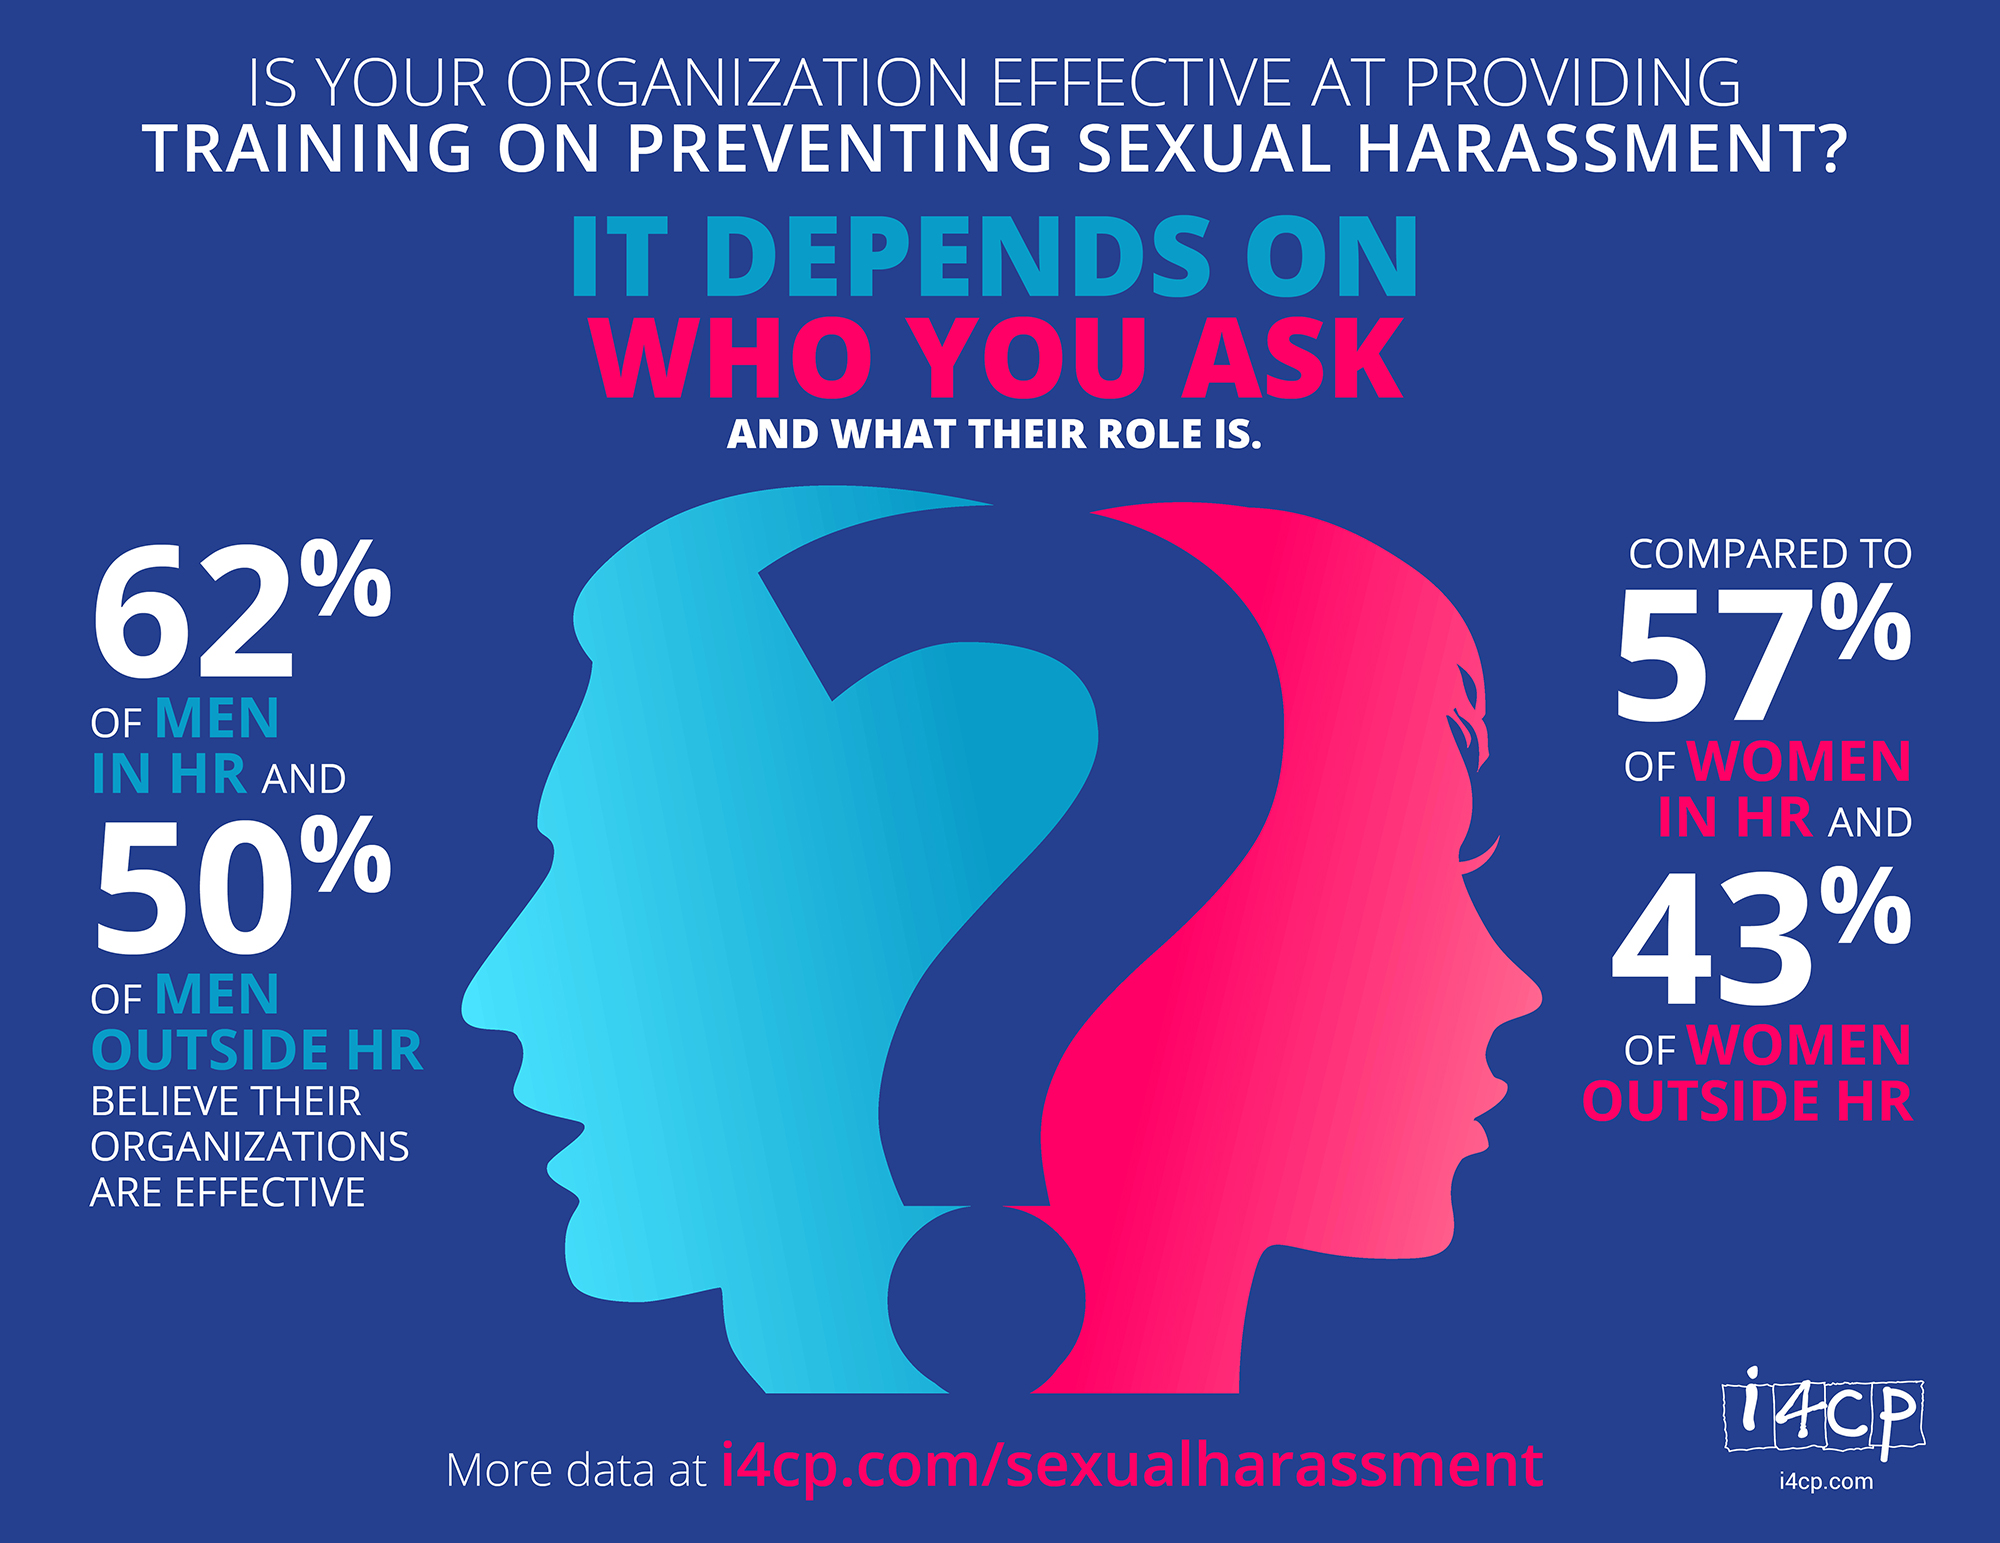 Sexual harassment and diversity training